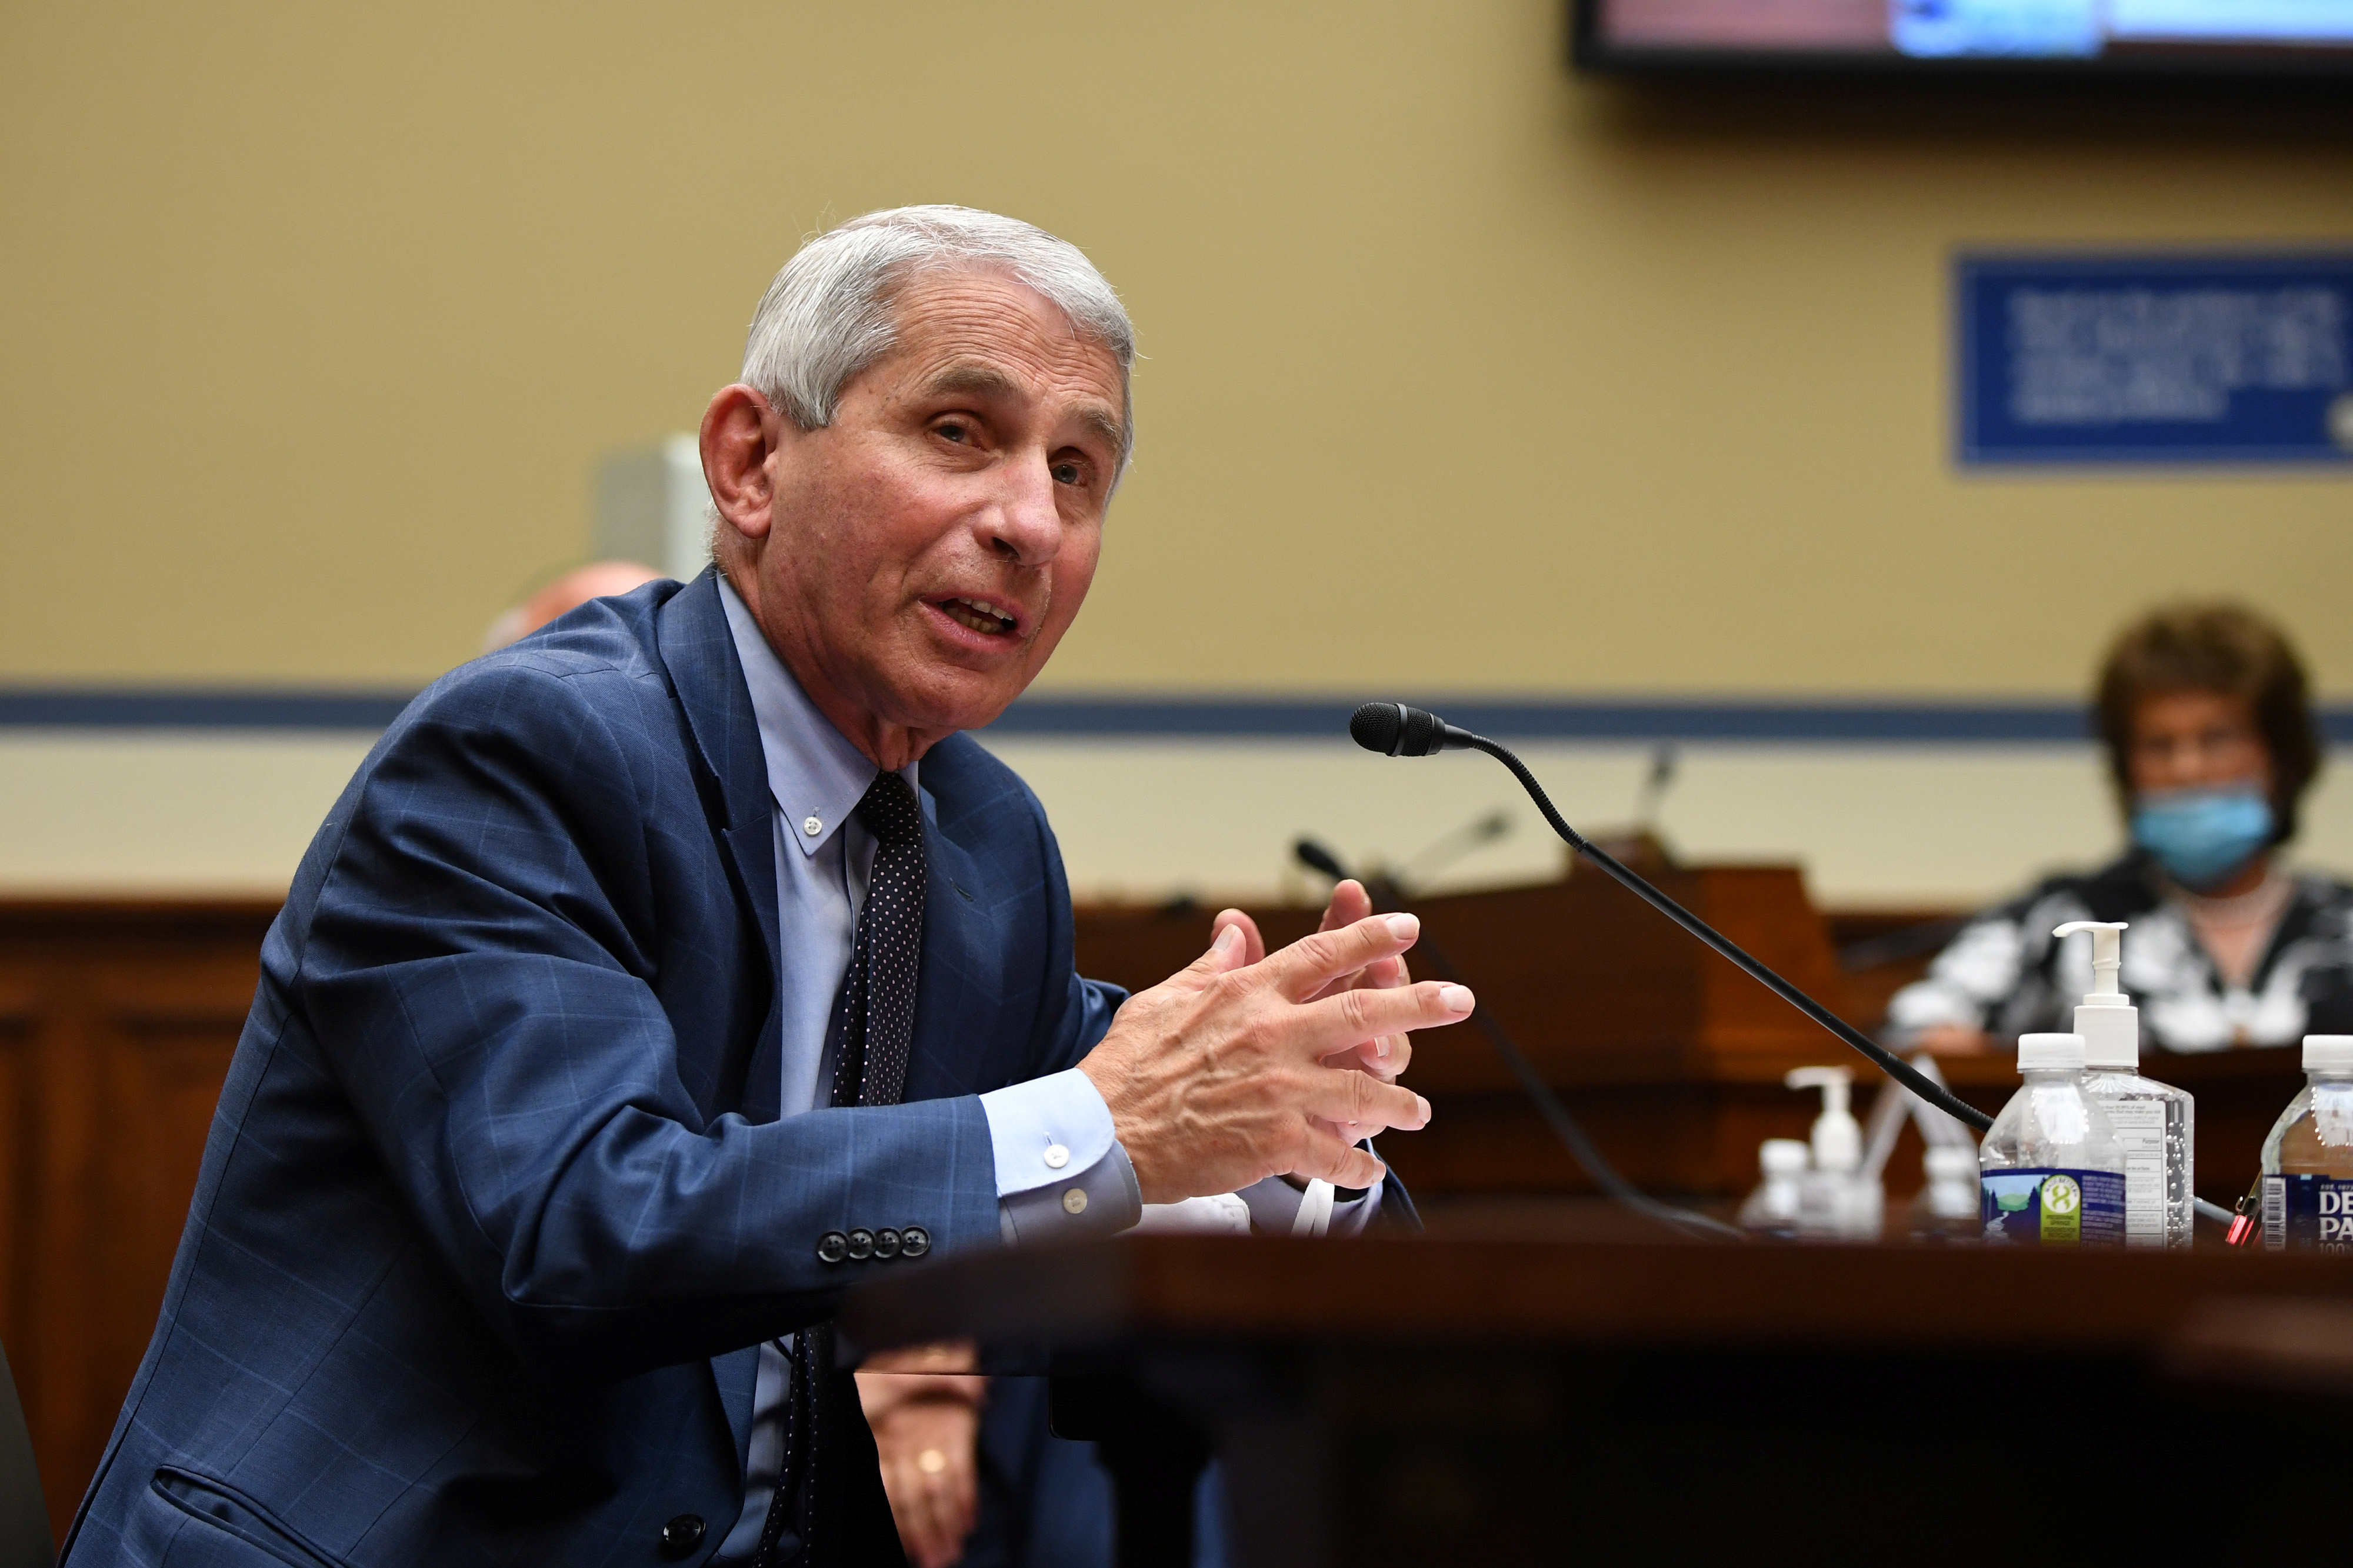 Fauci stressed that life will not return to normal until mid-2021